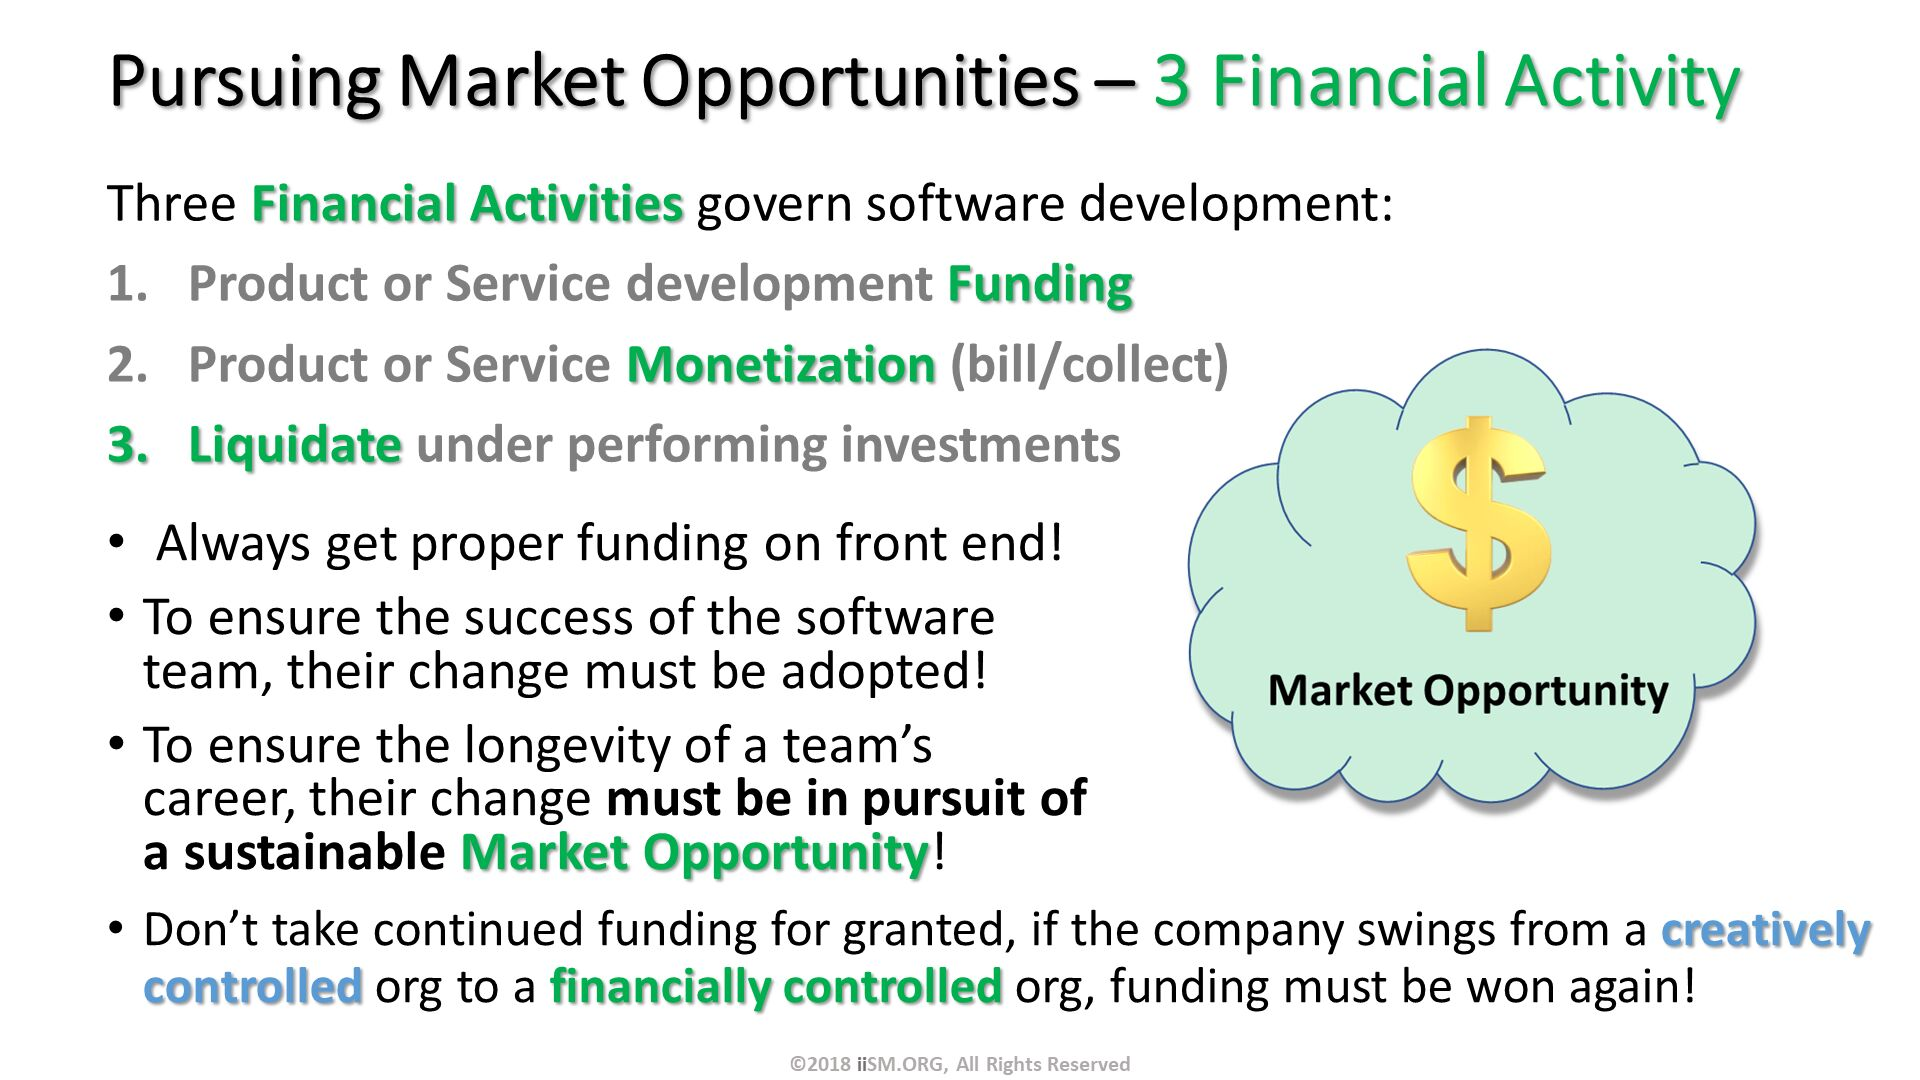 Pursuing Market Opportunities – 3 Financial Activity. Three Financial Activities govern software development: Product or Service development Funding Product or Service Monetization (bill/collect) Liquidate under performing investments.  Always get proper funding on front end! To ensure the success of the software team, their change must be adopted!  To ensure the longevity of a team's career, their change must be in pursuit of a sustainable Market Opportunity!  . Don't take continued funding for granted, if the company swings from a creatively controlled org to a financially controlled org, funding must be won again! . ©2018 iiSM.ORG, All Rights Reserved.